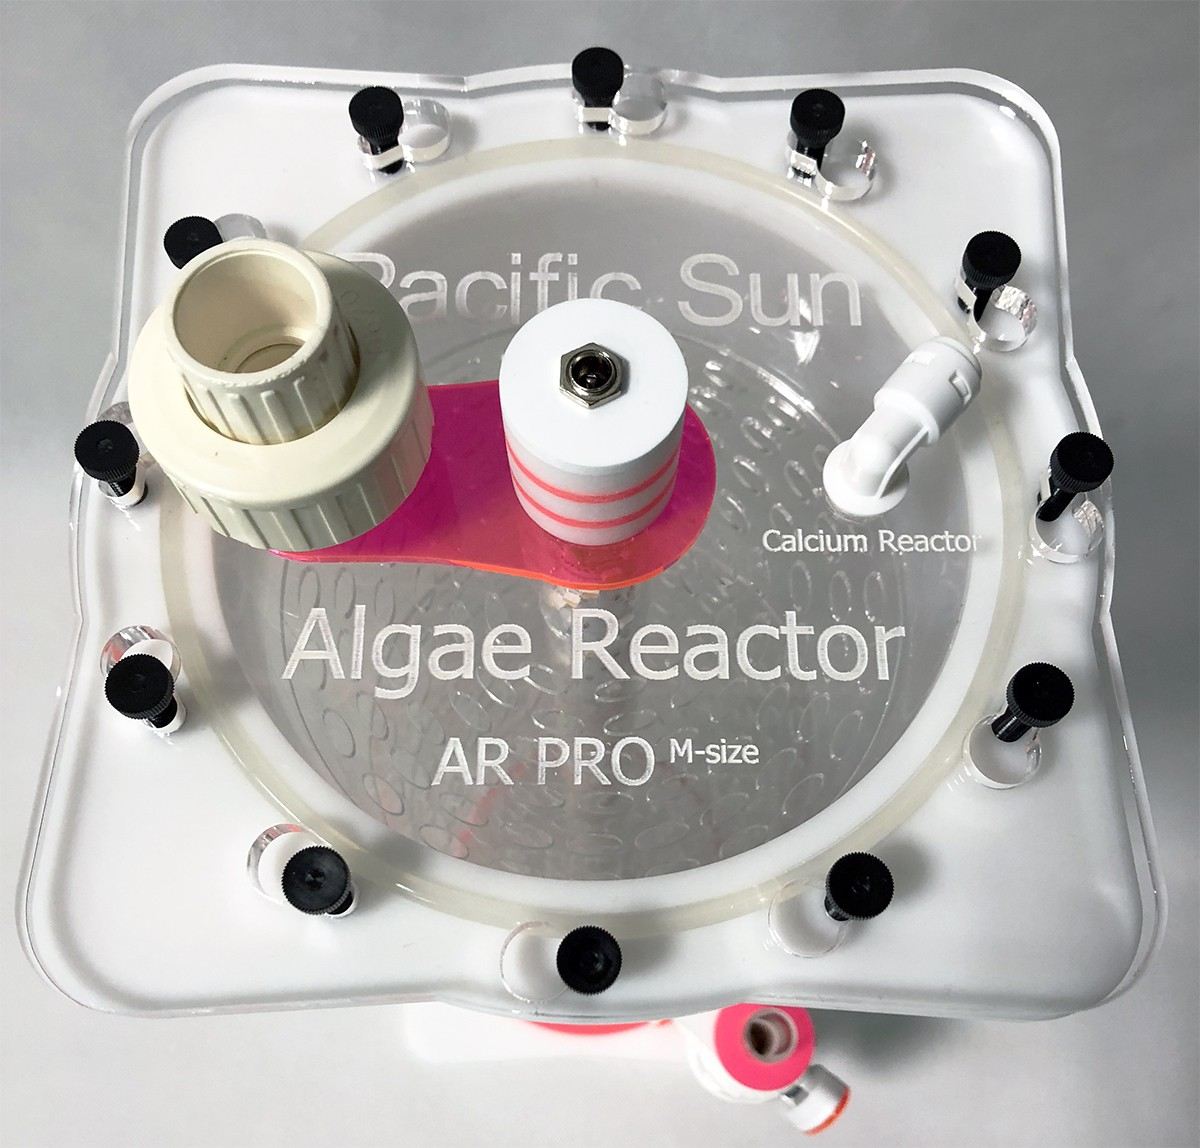 pacific sun algea reactor